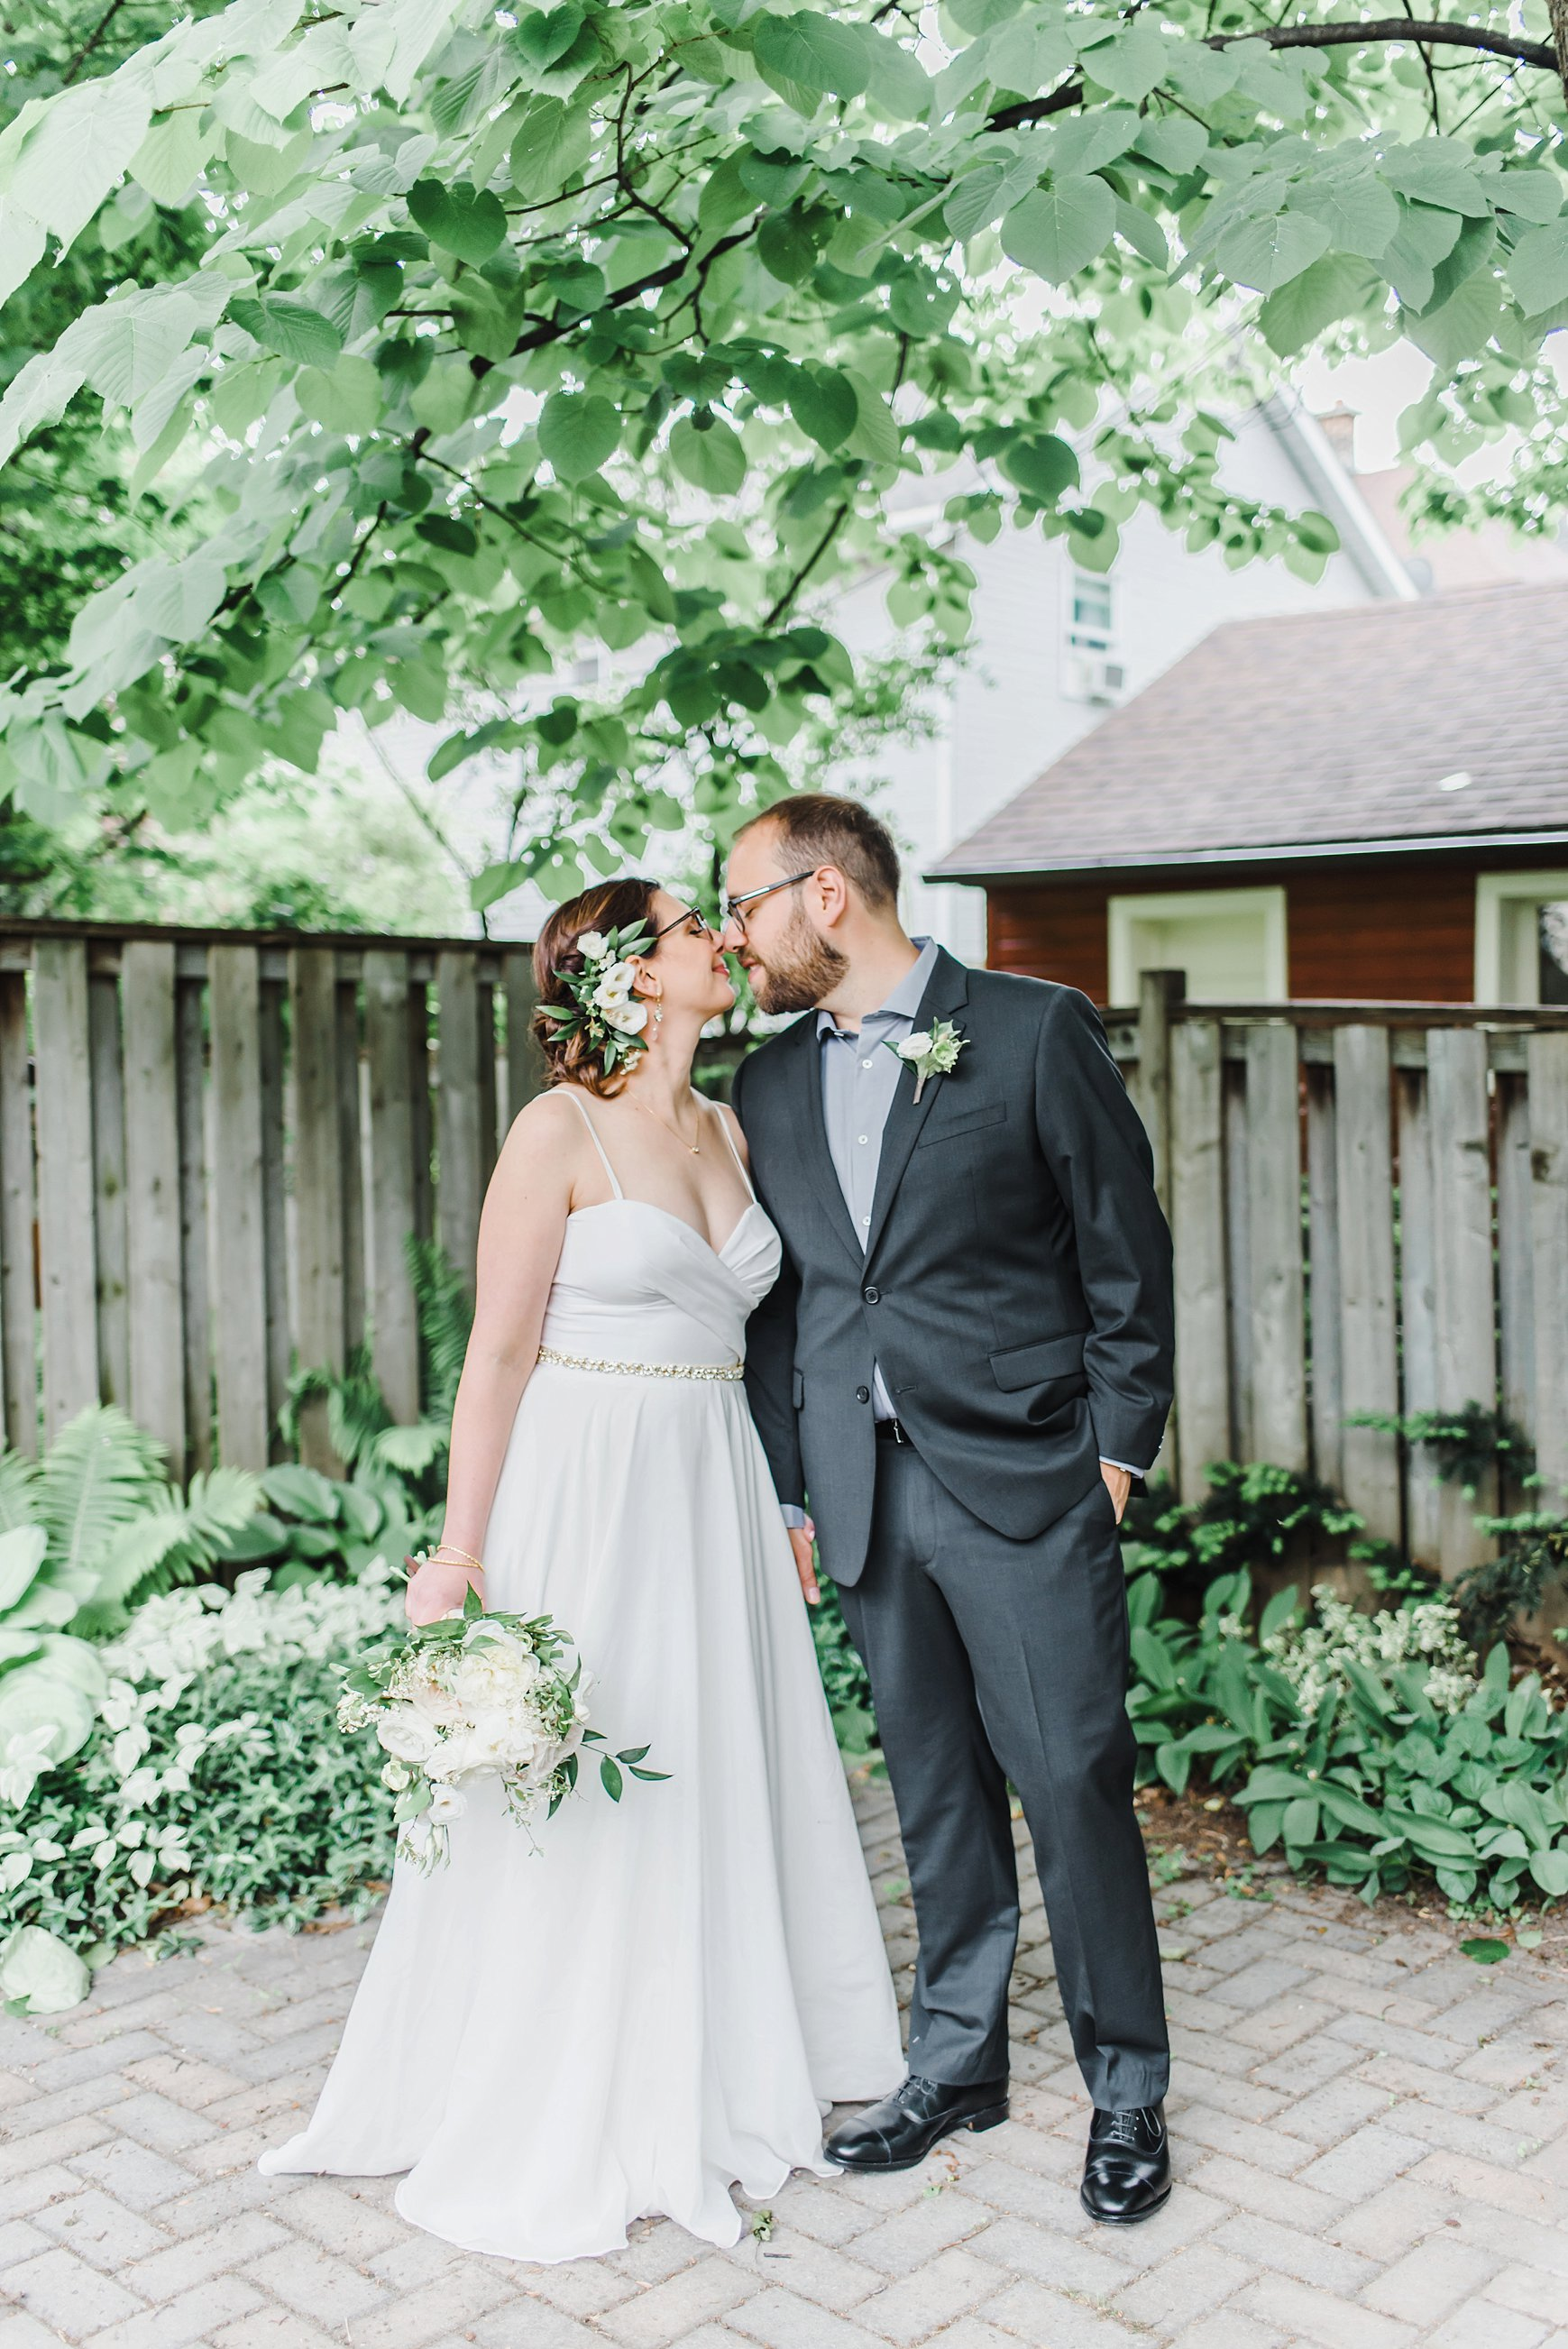 light airy indie fine art ottawa wedding photographer | Ali and Batoul Photography_1718.jpg